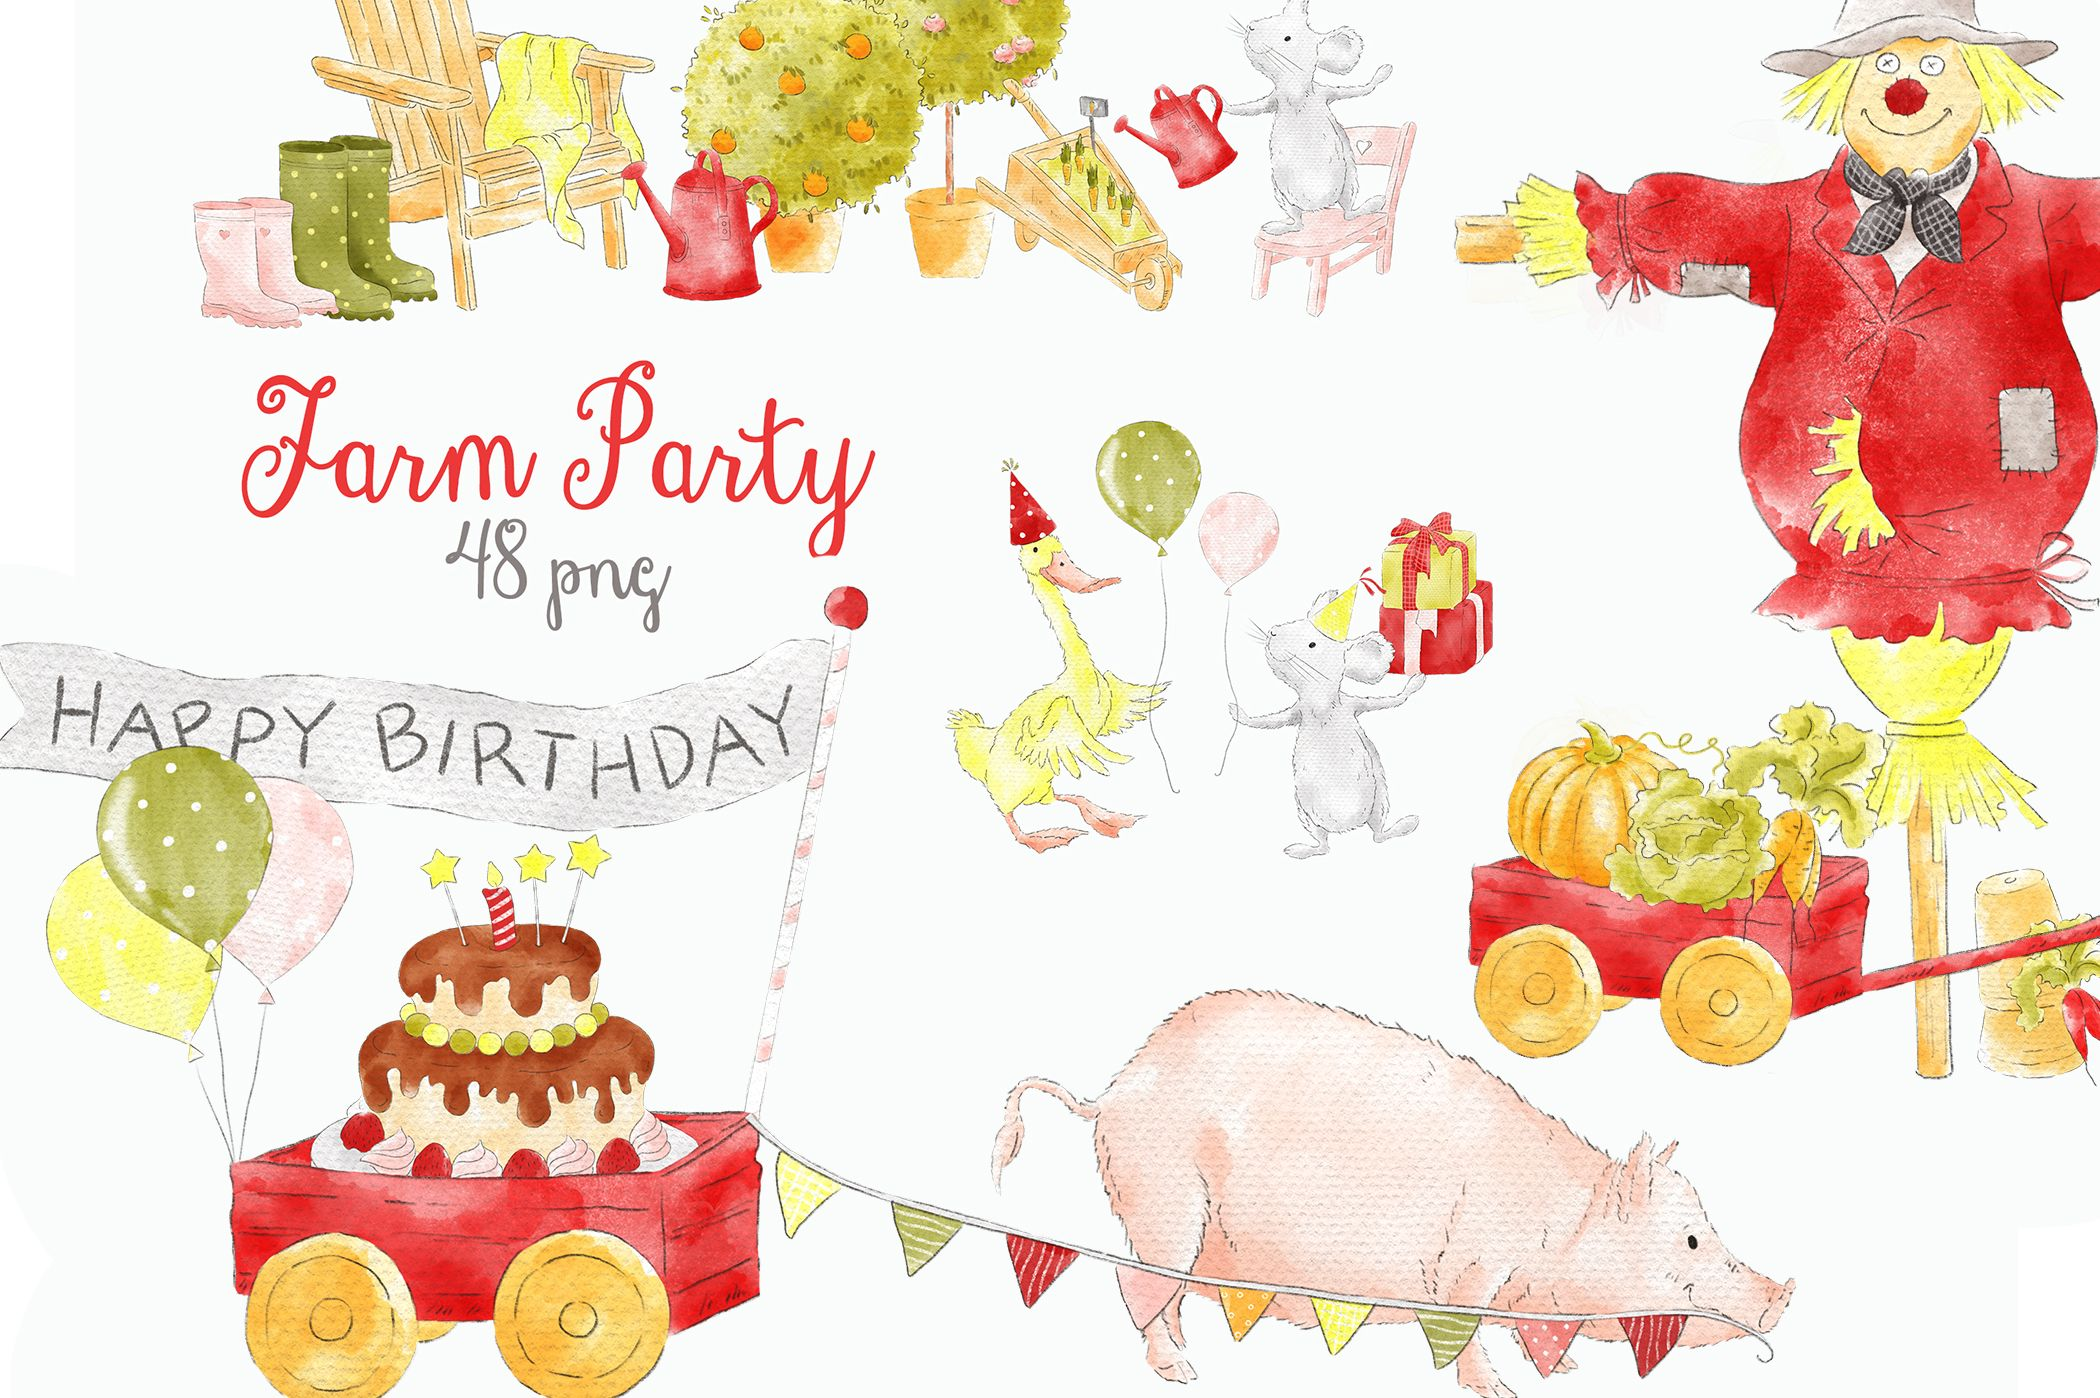 Watercolor clipart barn picture download Farm Party Barnyard Cute Animals Clipart | Design add-on picture download